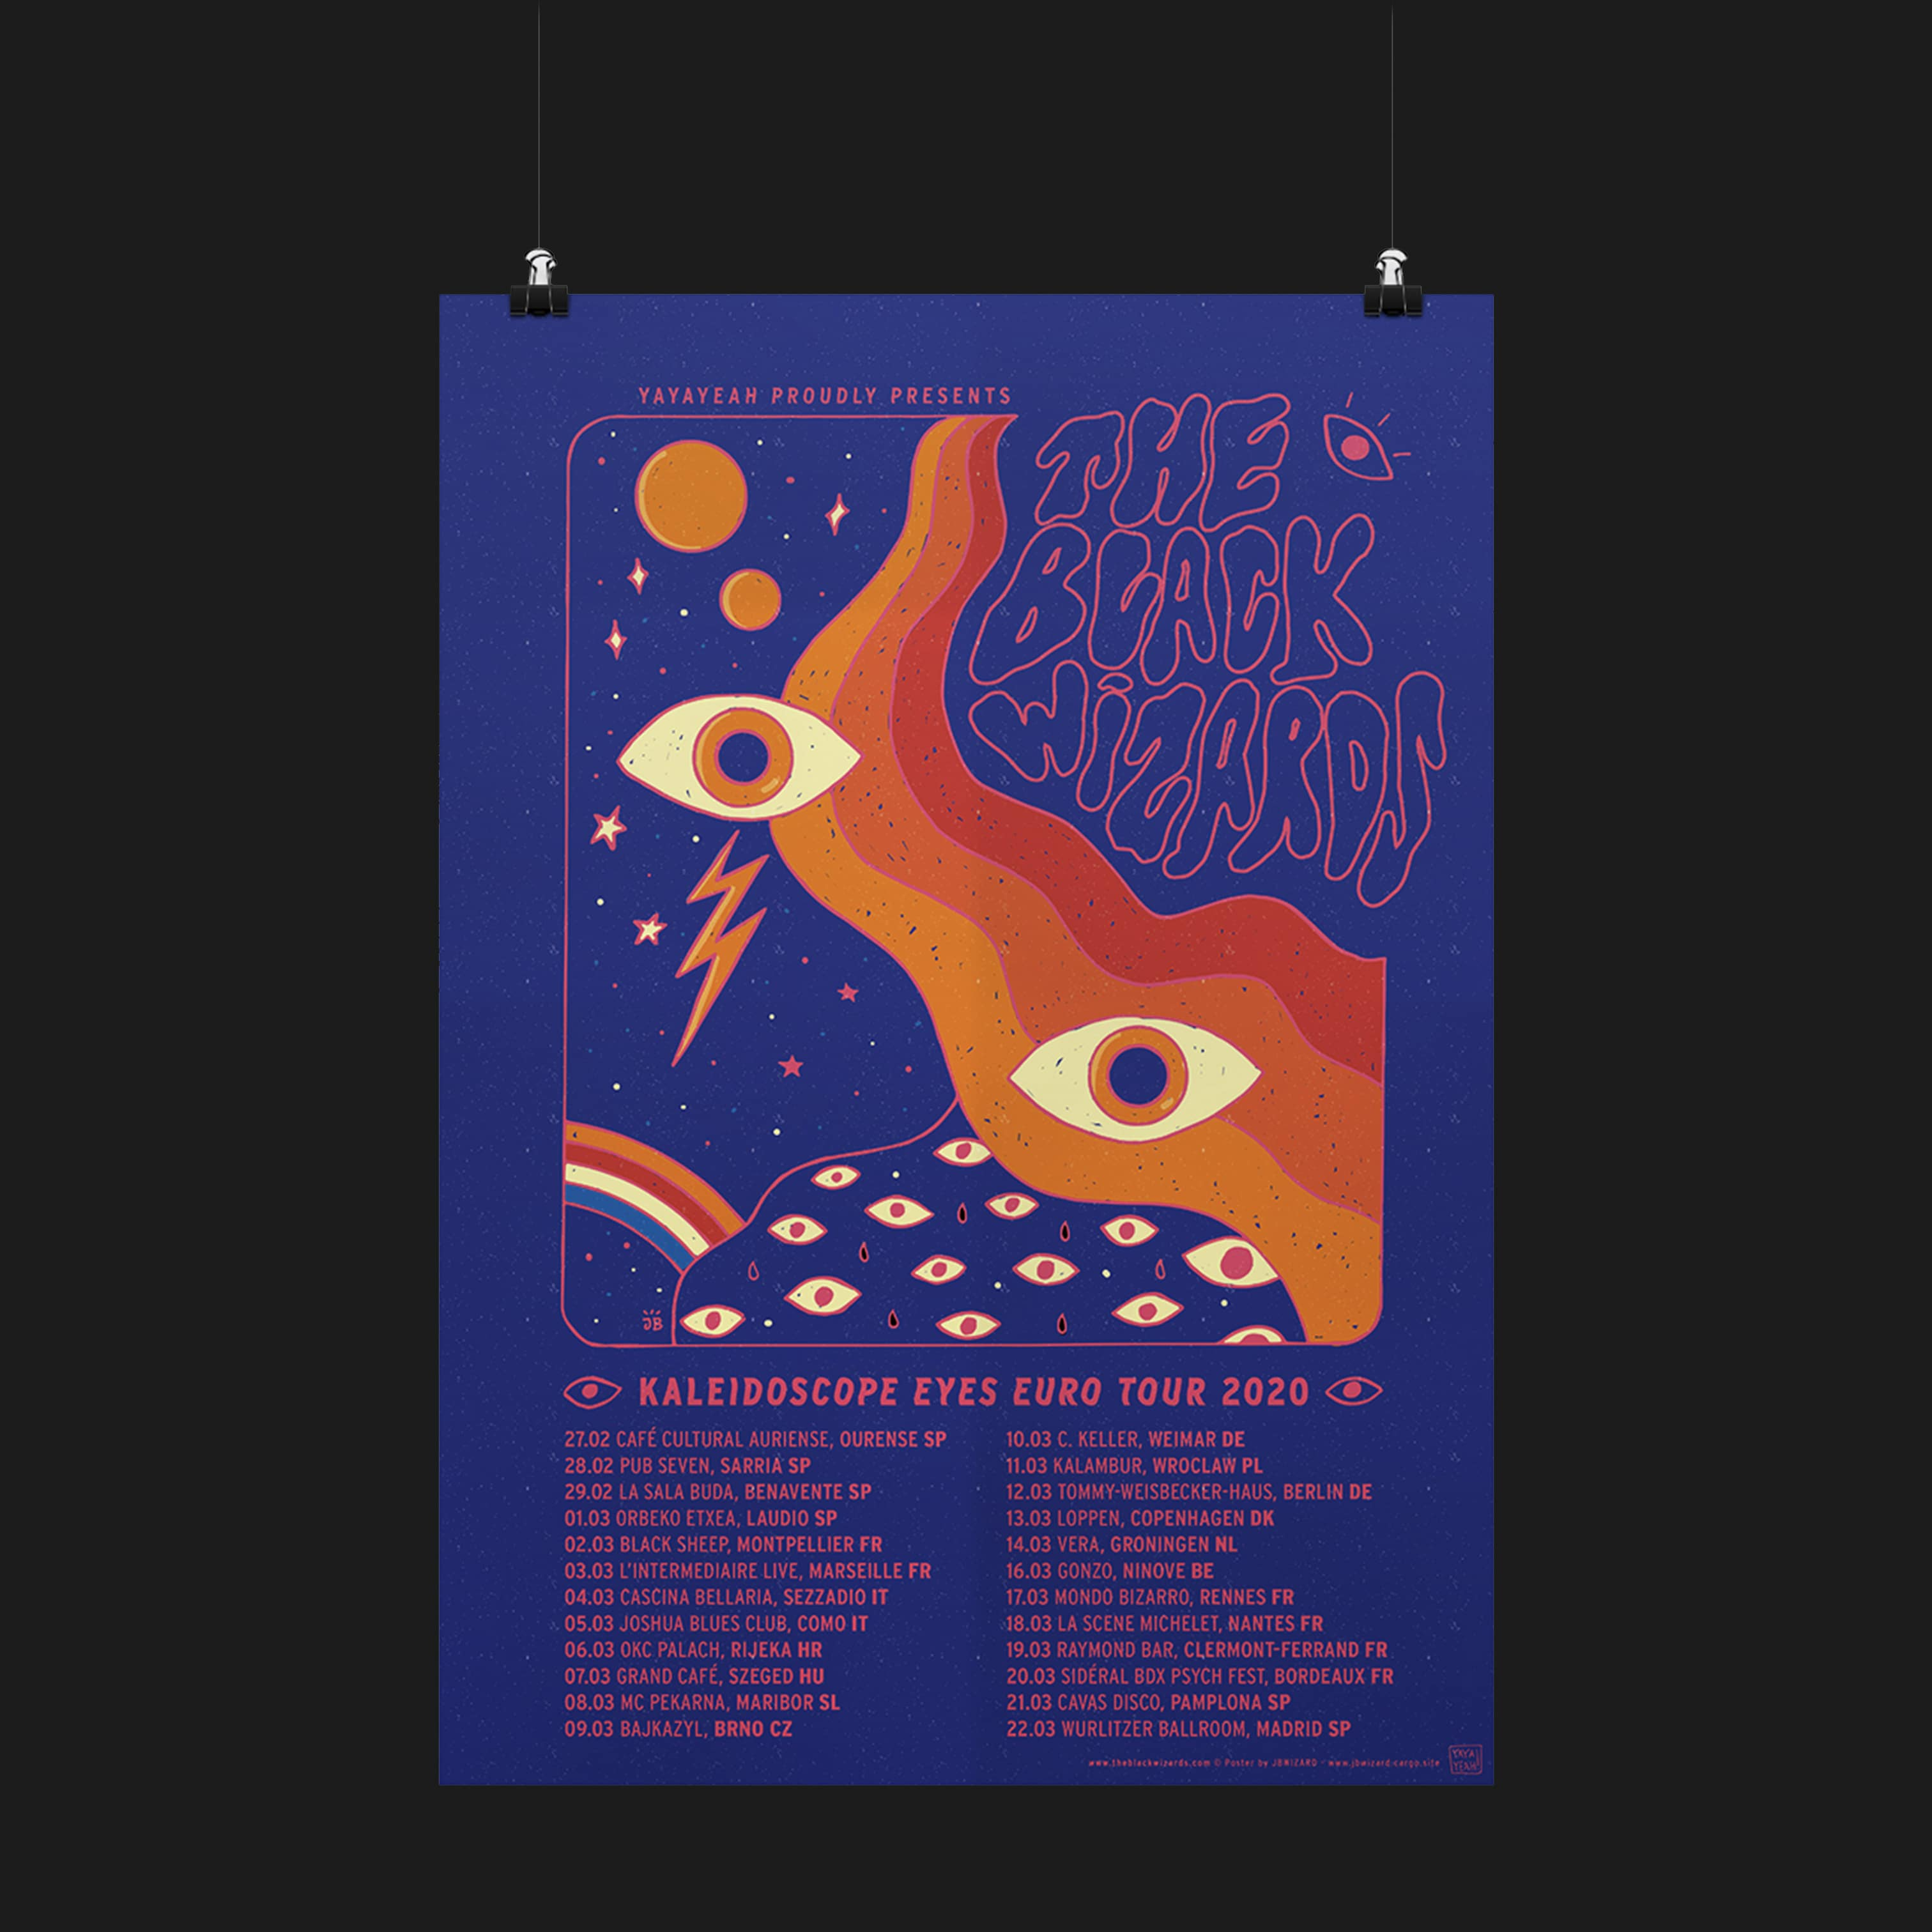 Kaleidoscope Eyes Tour Poster